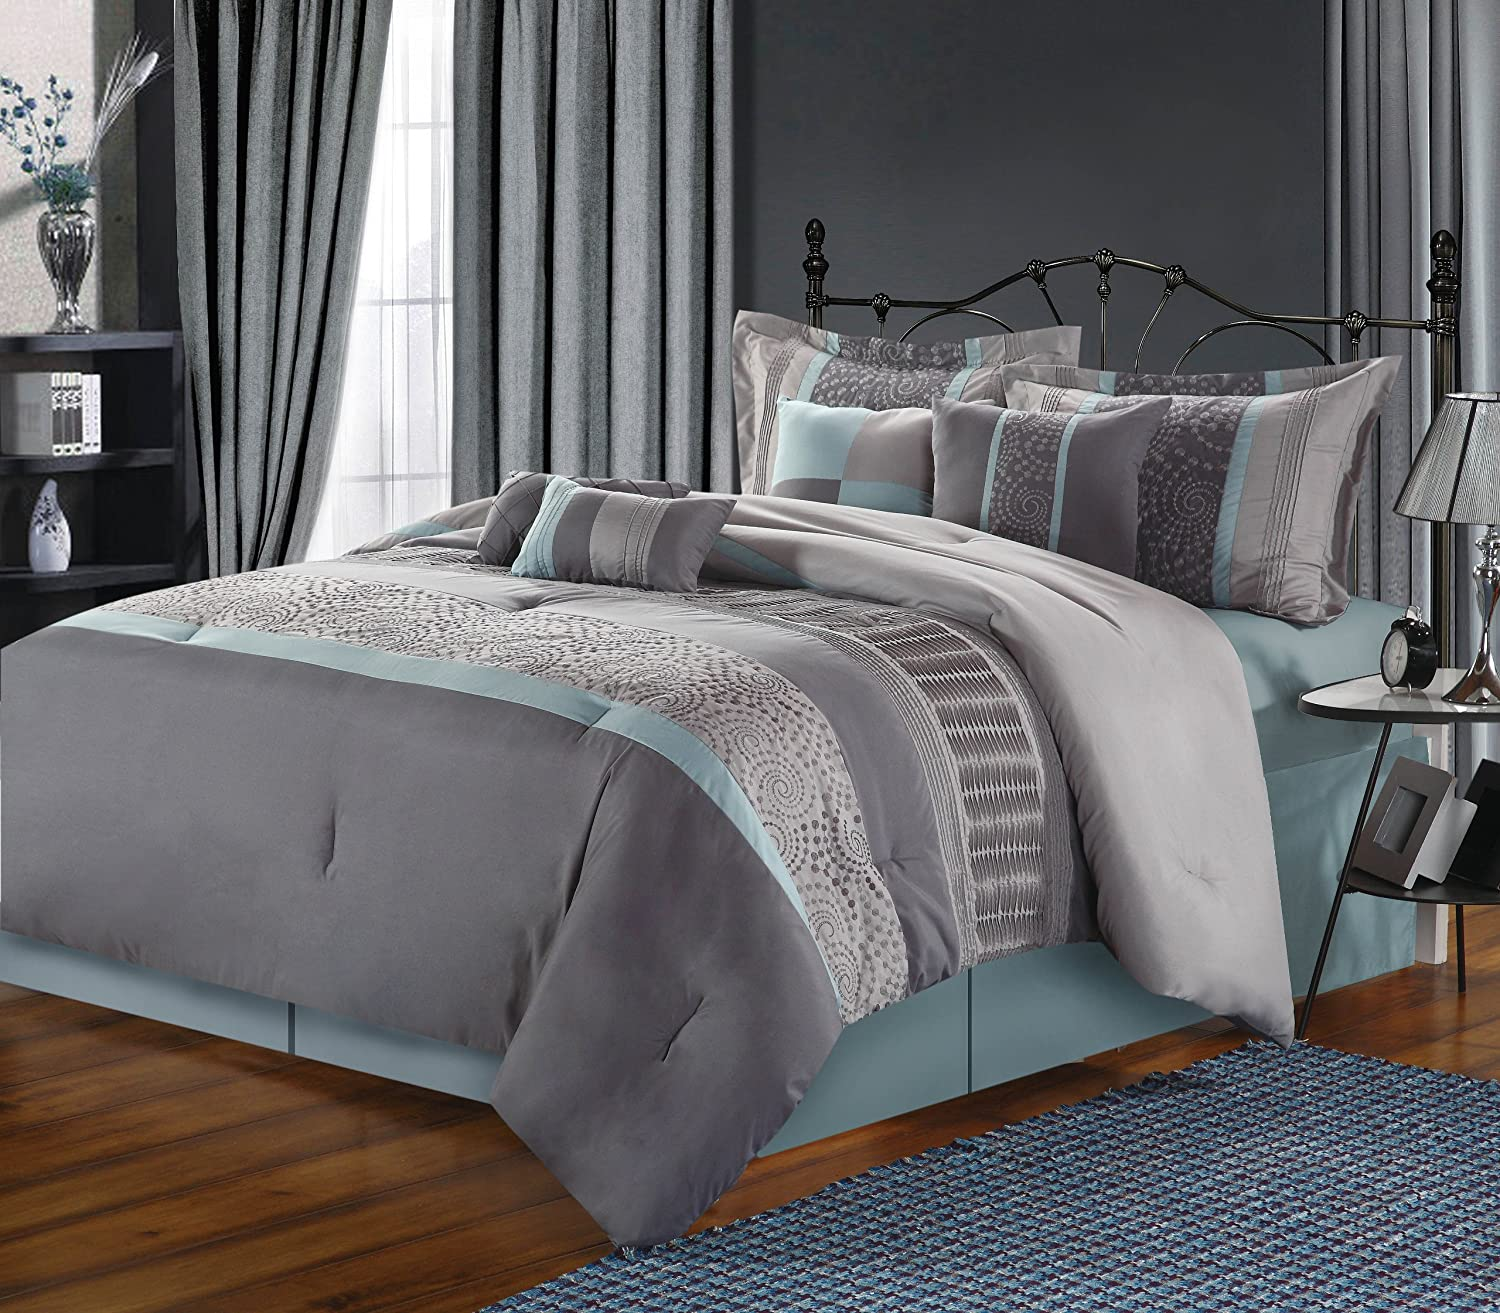 Blue and Gray Bedding Sets 1500 x 1312